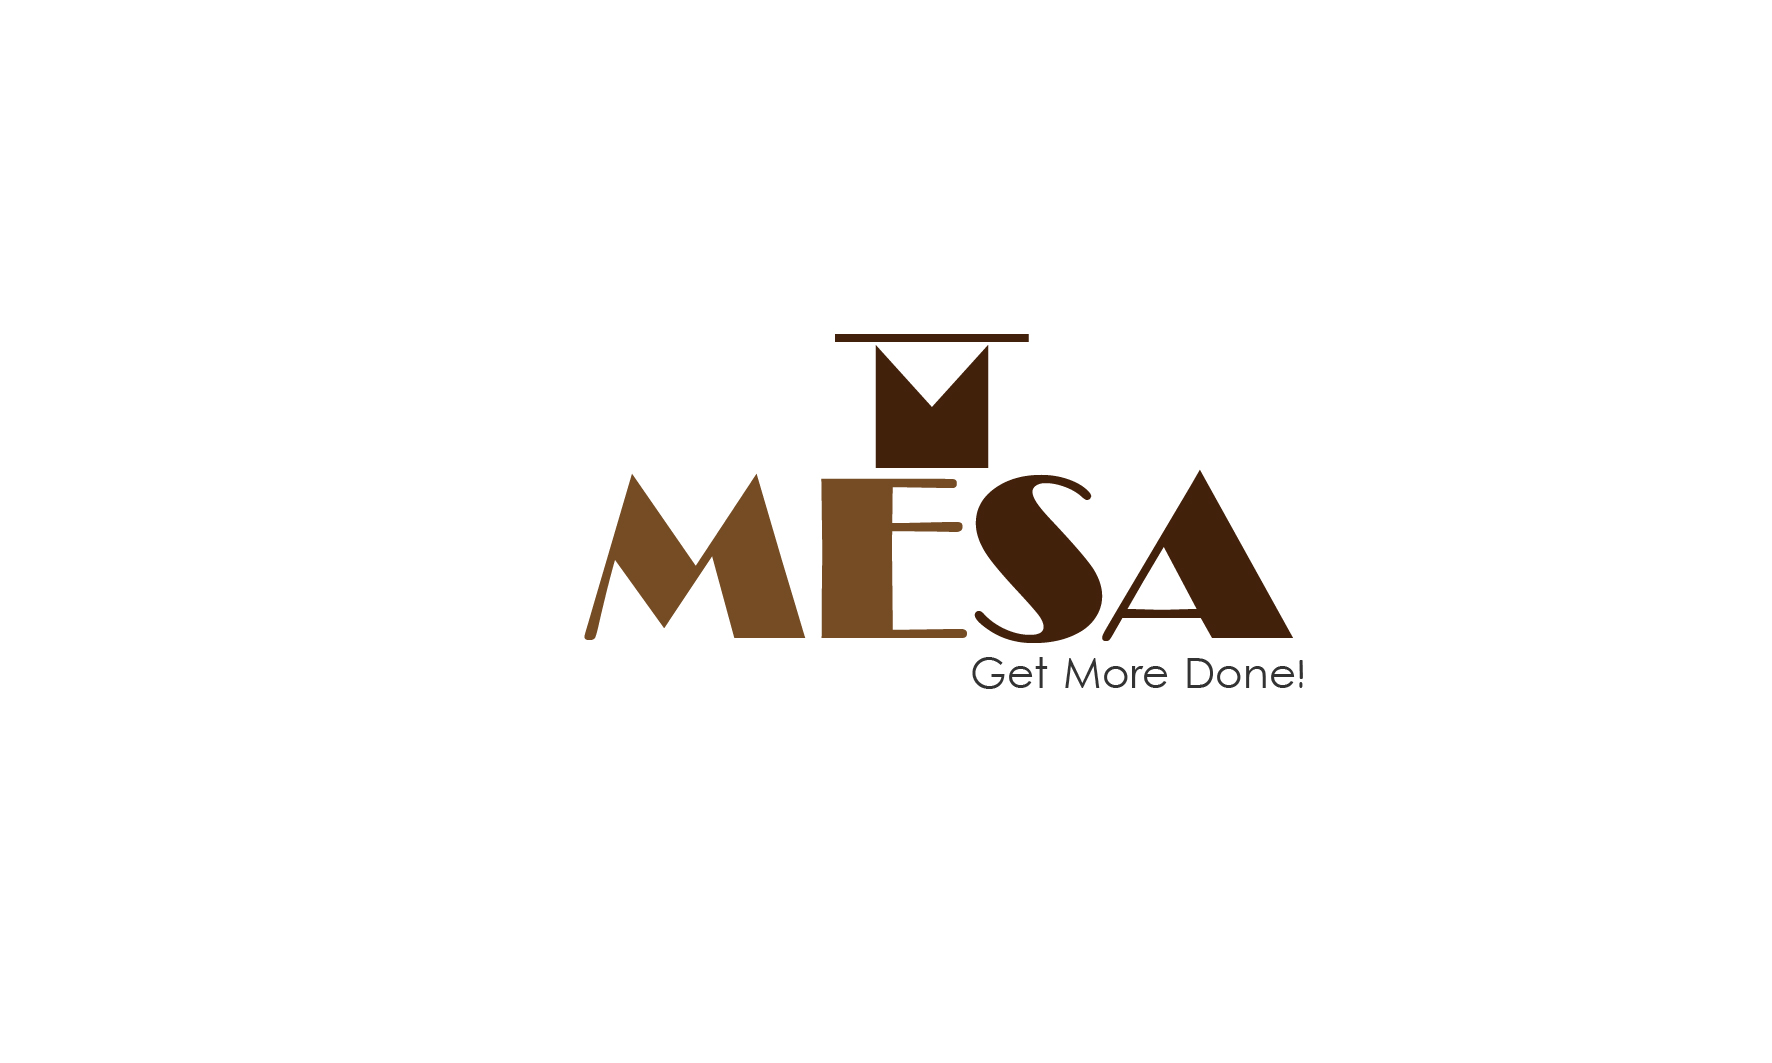 Logo Design by 3draw - Entry No. 166 in the Logo Design Contest Logo Design for Mesa.